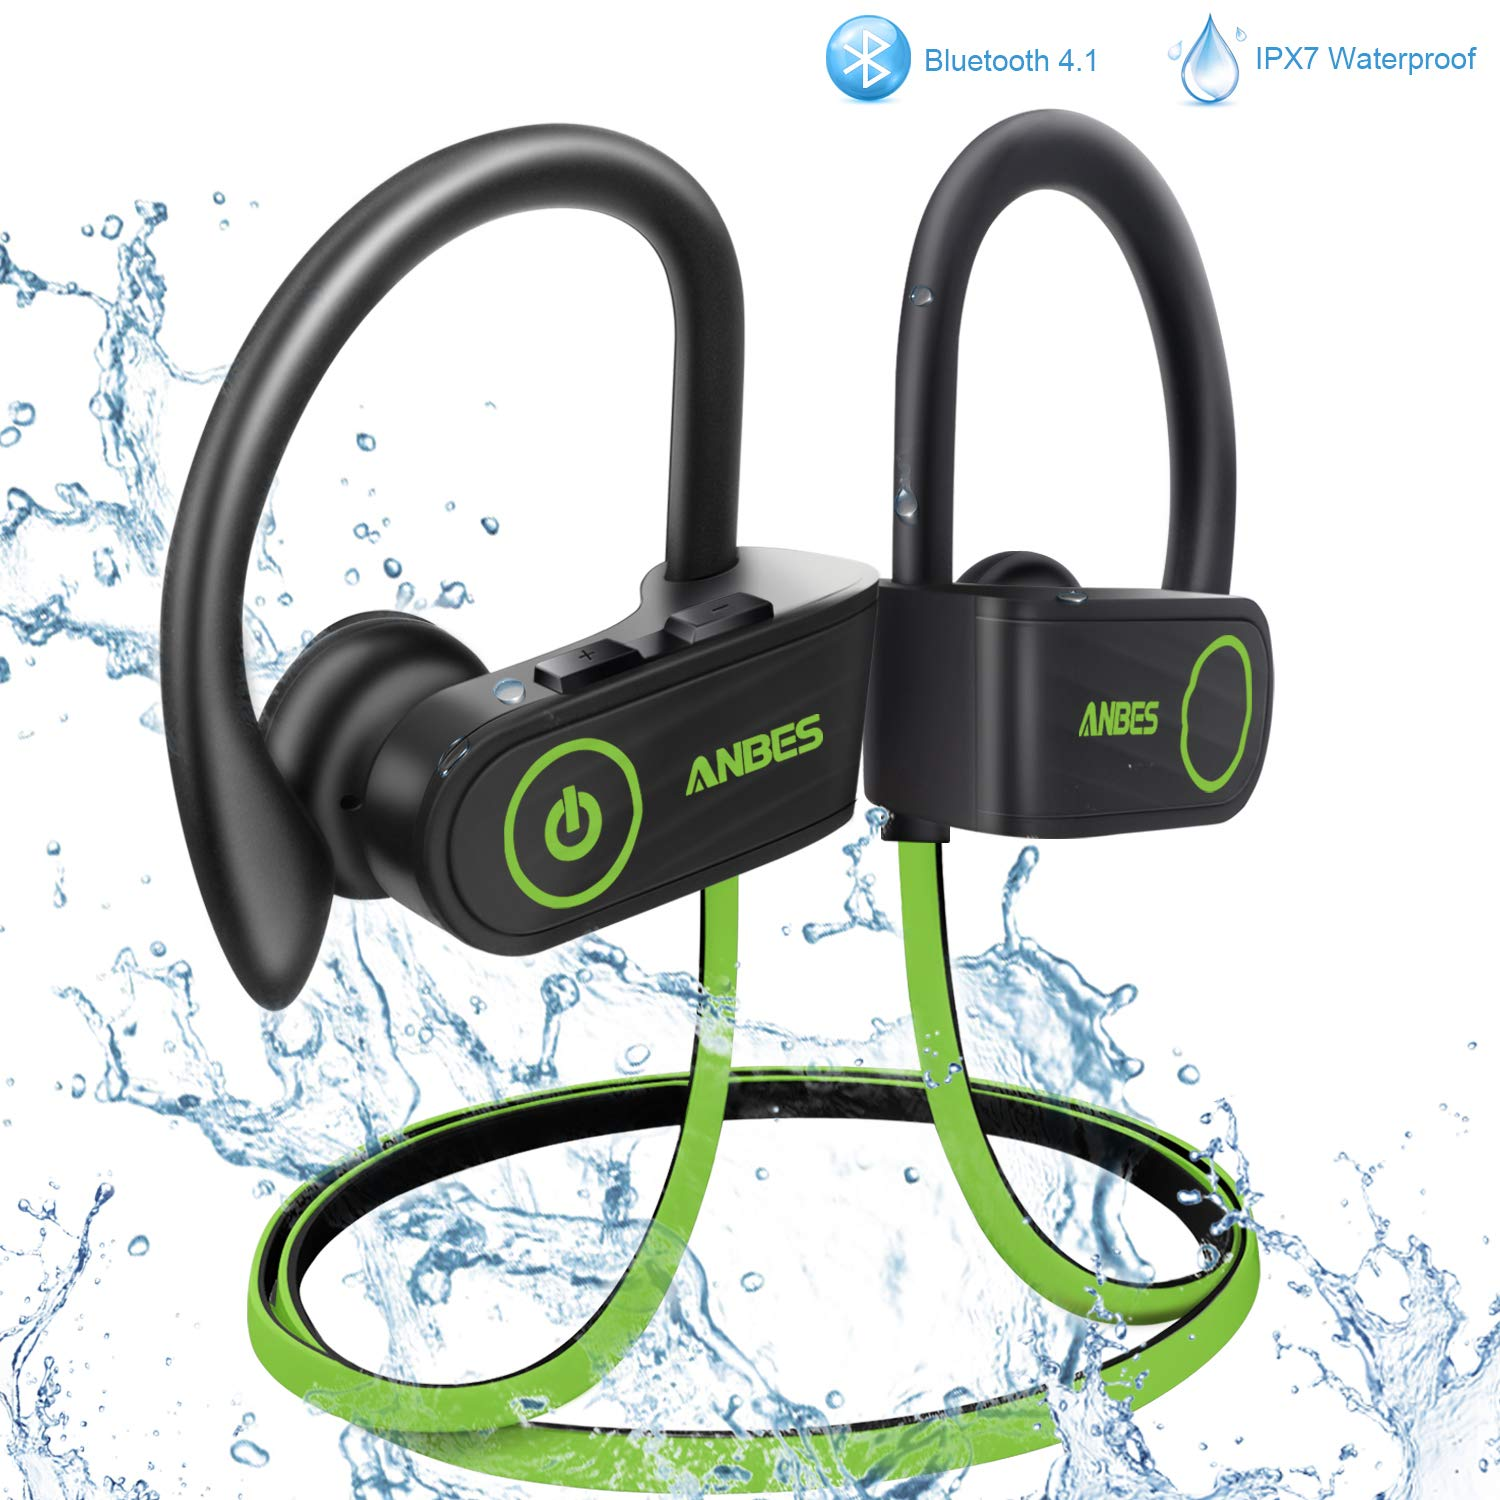 ANBES Bluetooth Headphones Wireless Earbuds, IPX7 Waterproof in-Ear Earphones Sports with Ear Hooks & Mic, HD Stereo Sound, Up to 8 Hours Playing Noise Canceling Headsets (GreenBlack)